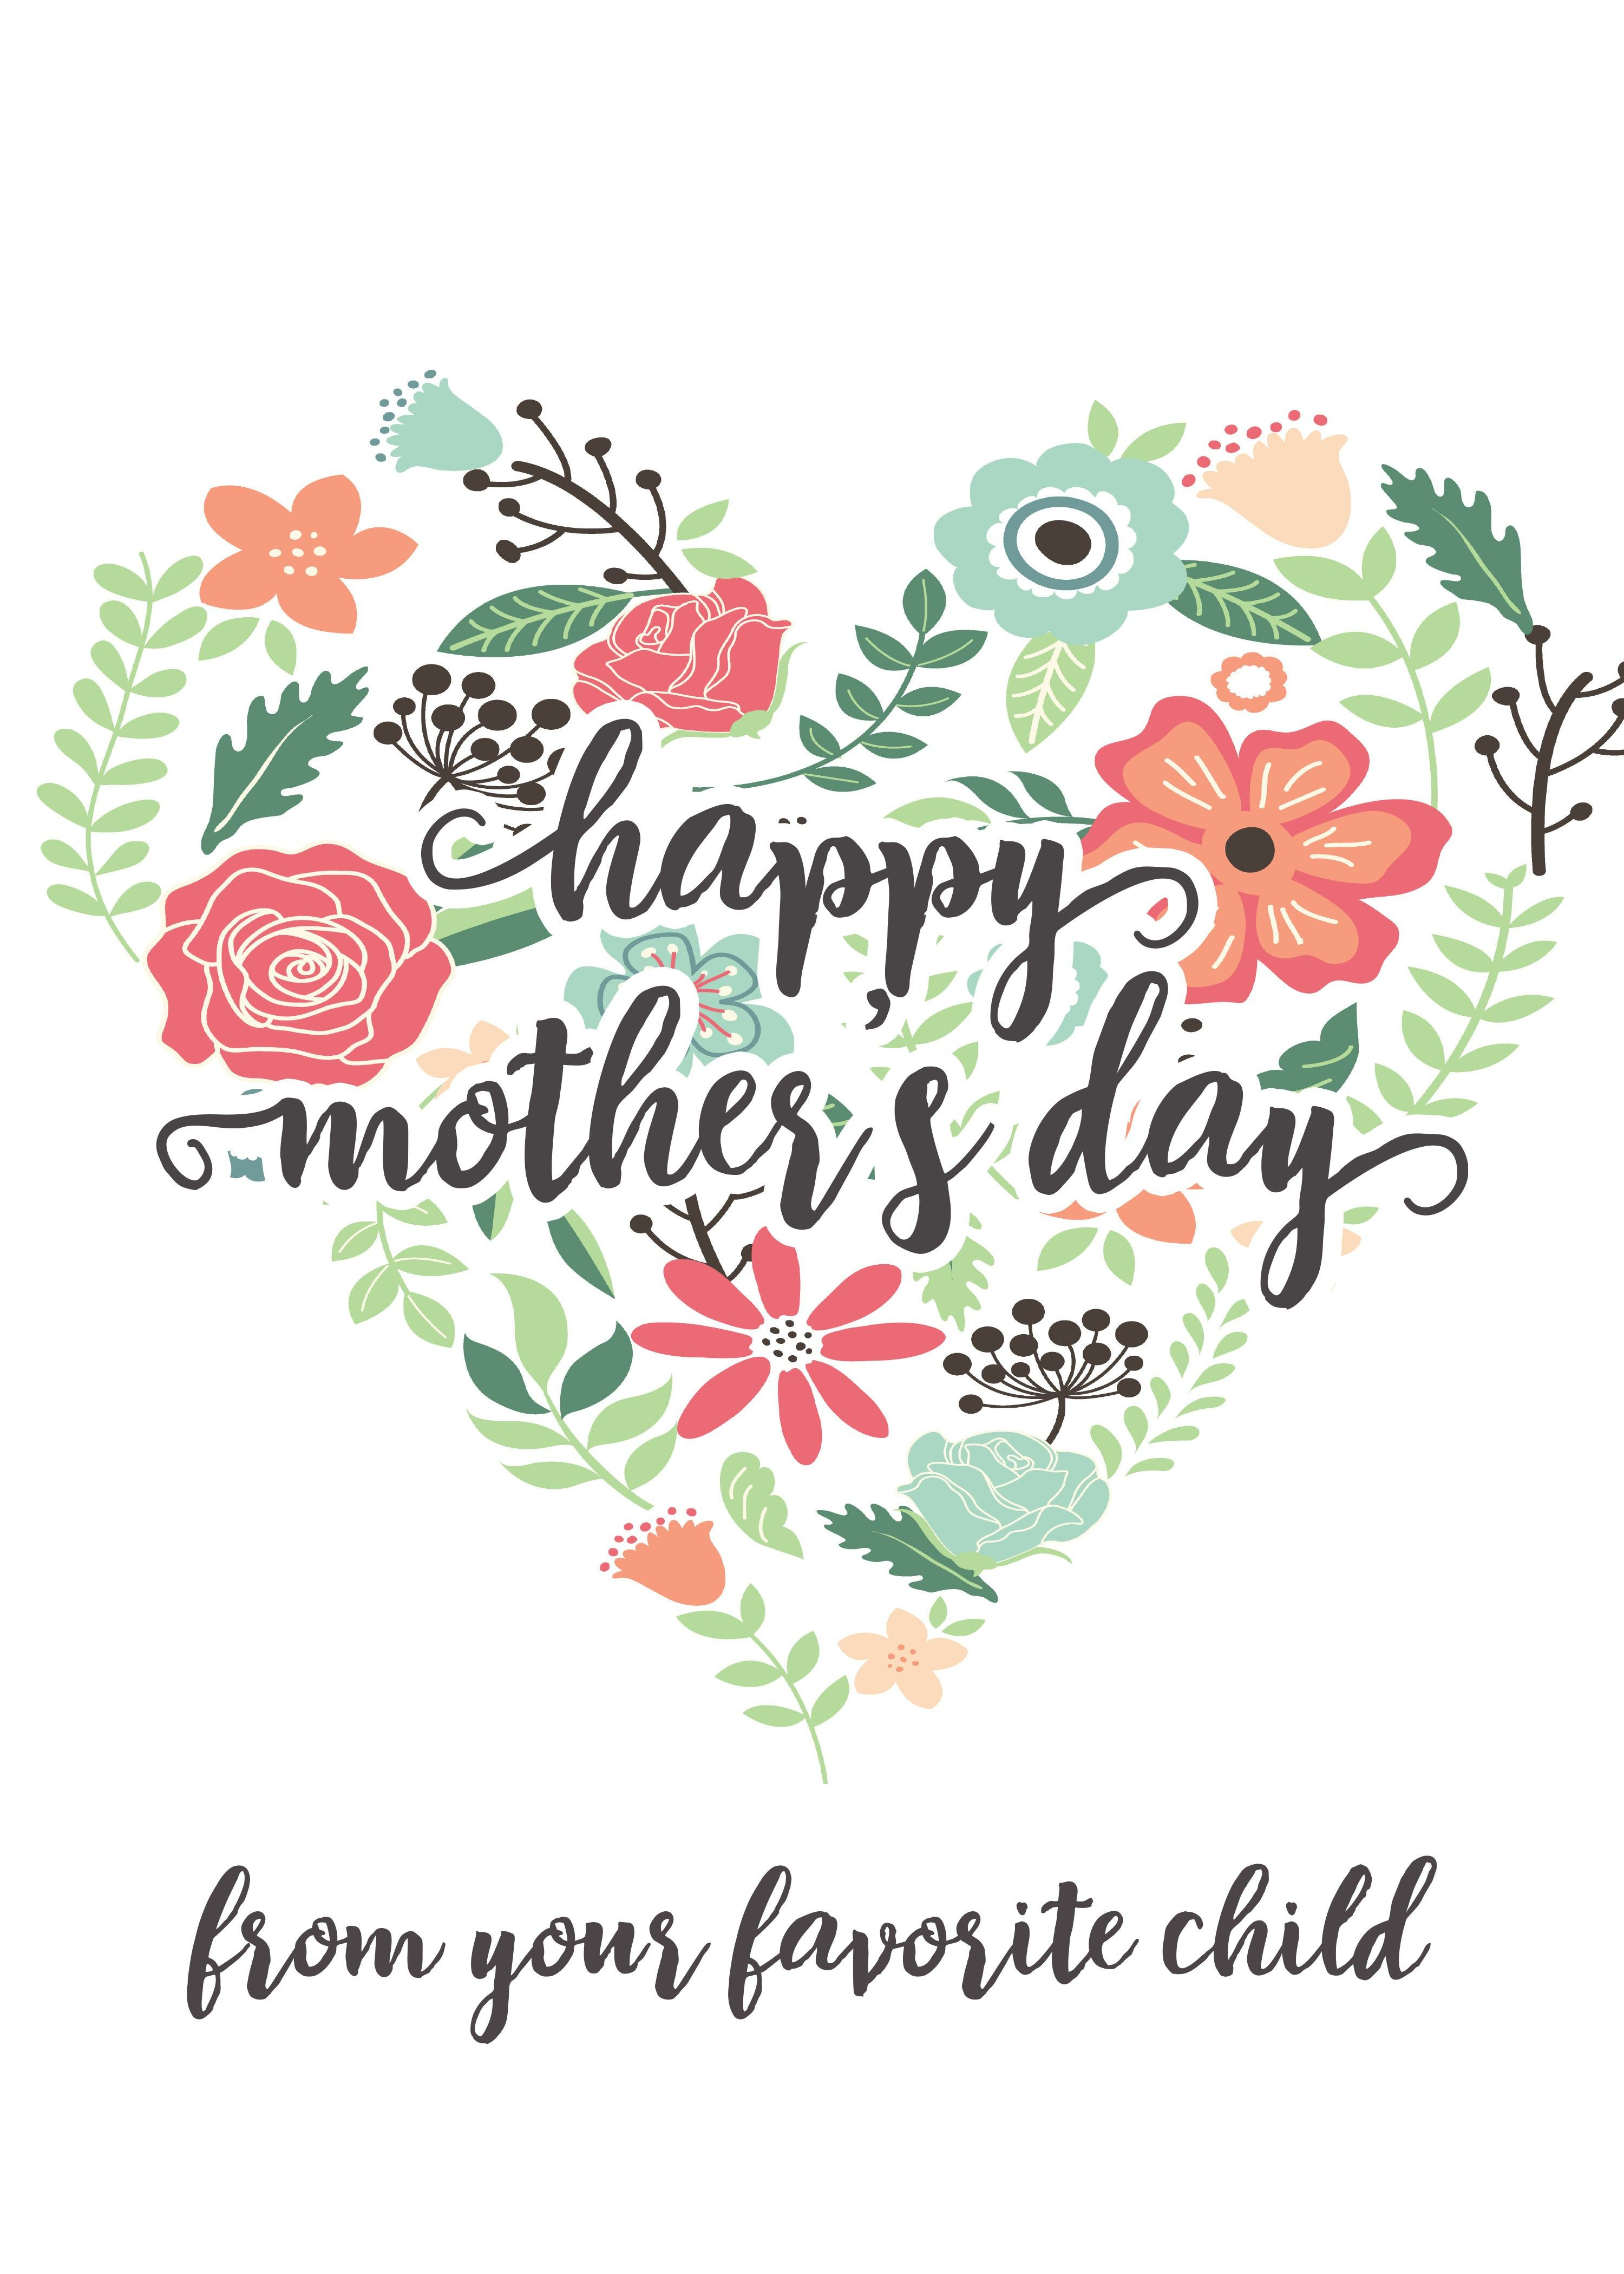 Happy Mothers Day Messages Free Printable Mothers Day Cards - Free Printable Mothers Day Cards From The Dog